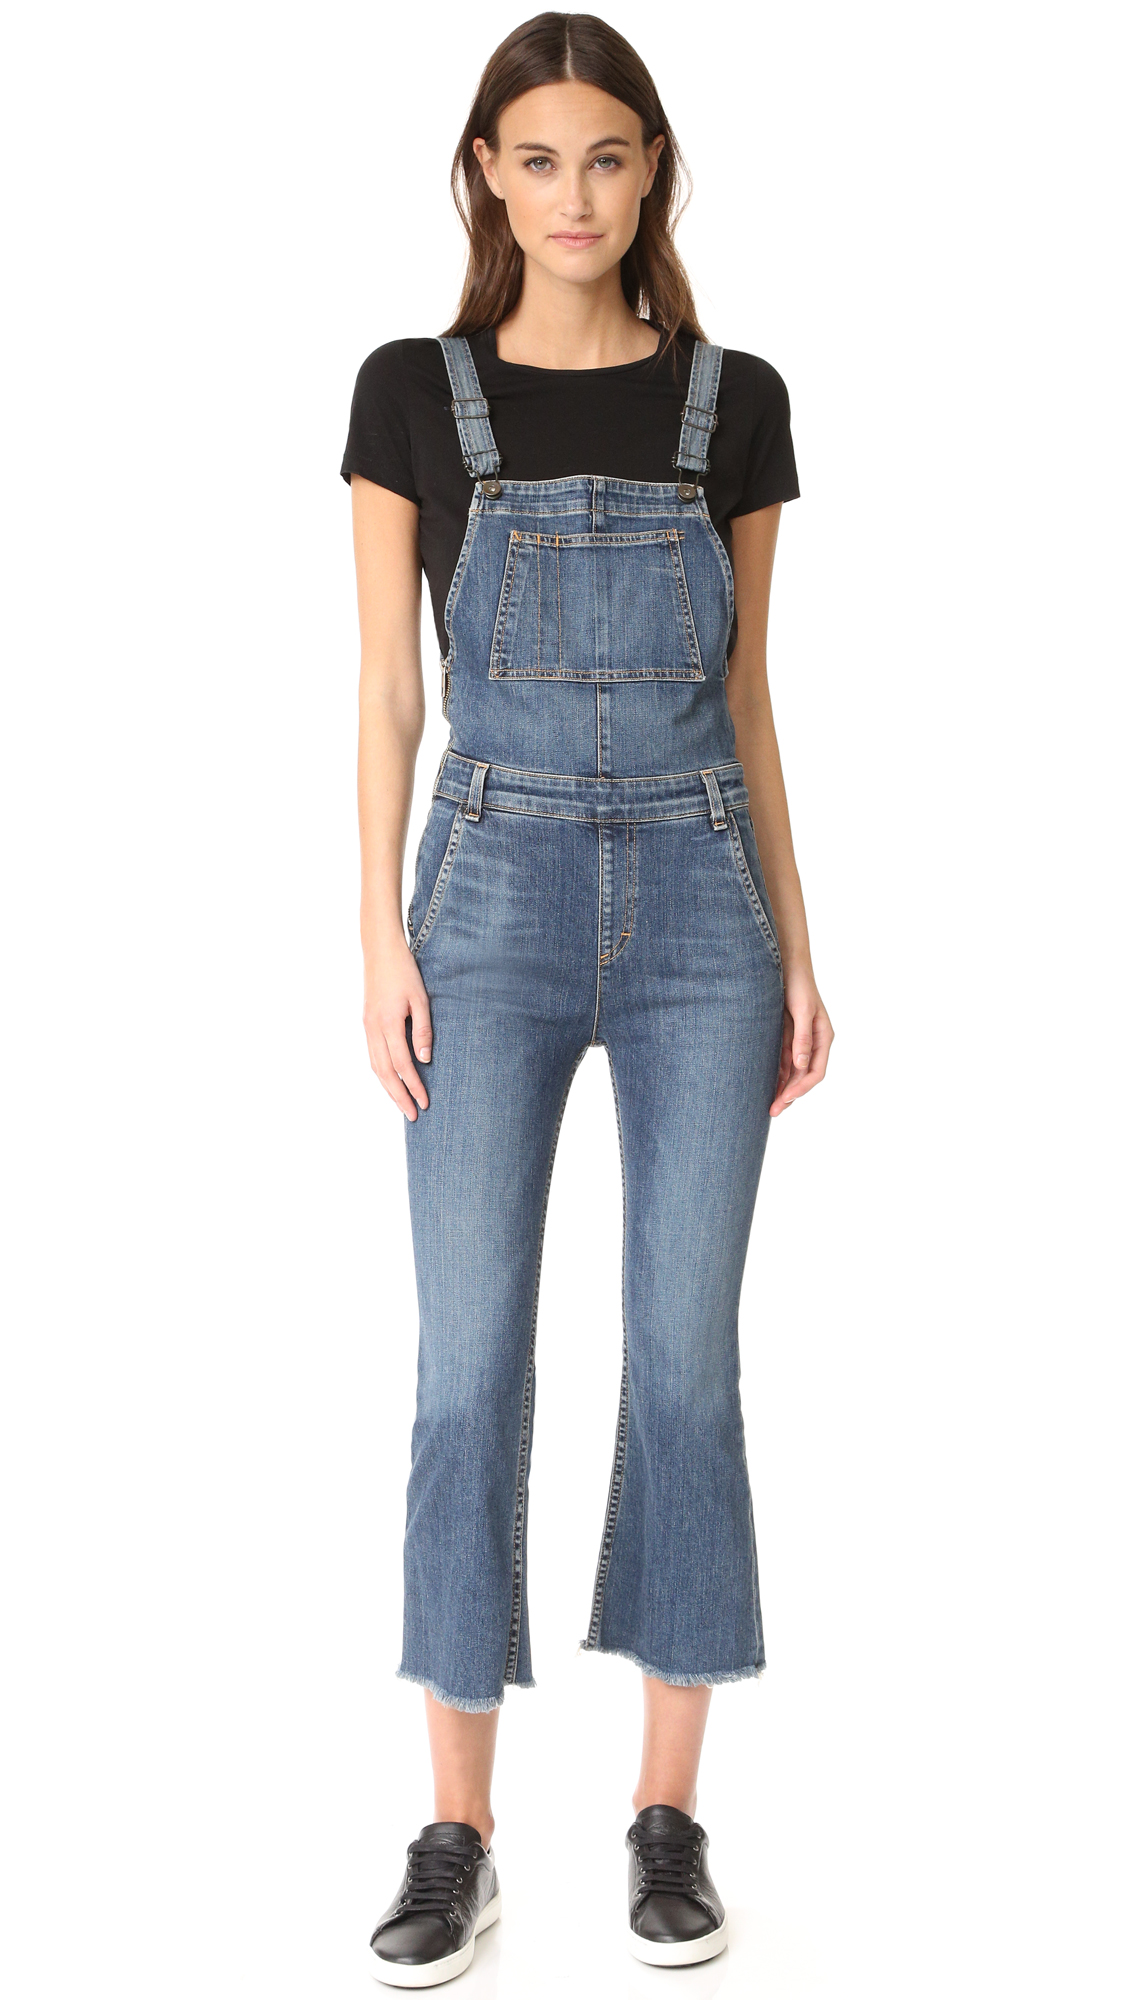 Rag & Bone/JEAN overalls in a classic cut. Exposed side zip. Patch bib pocket, slant side pockets, and patch back pockets. Adjustable shoulder straps. Raw hems at the flared leg openings. Fabric: Stretch denim. 98% cotton/2% polyurethane.